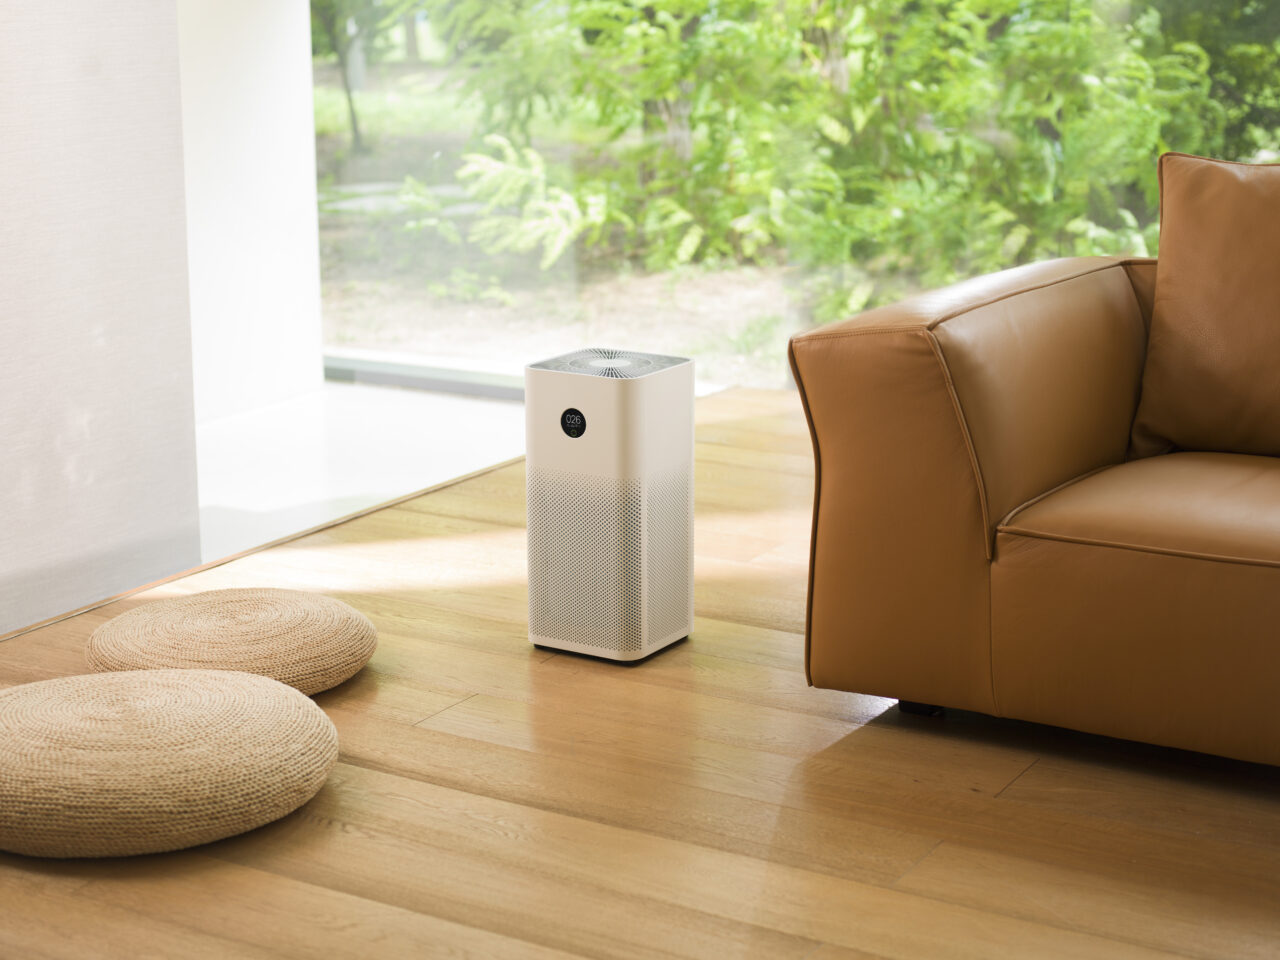 Mi Air Purifer 3H è la risposta di Xiaomi all'inquinamento indoor